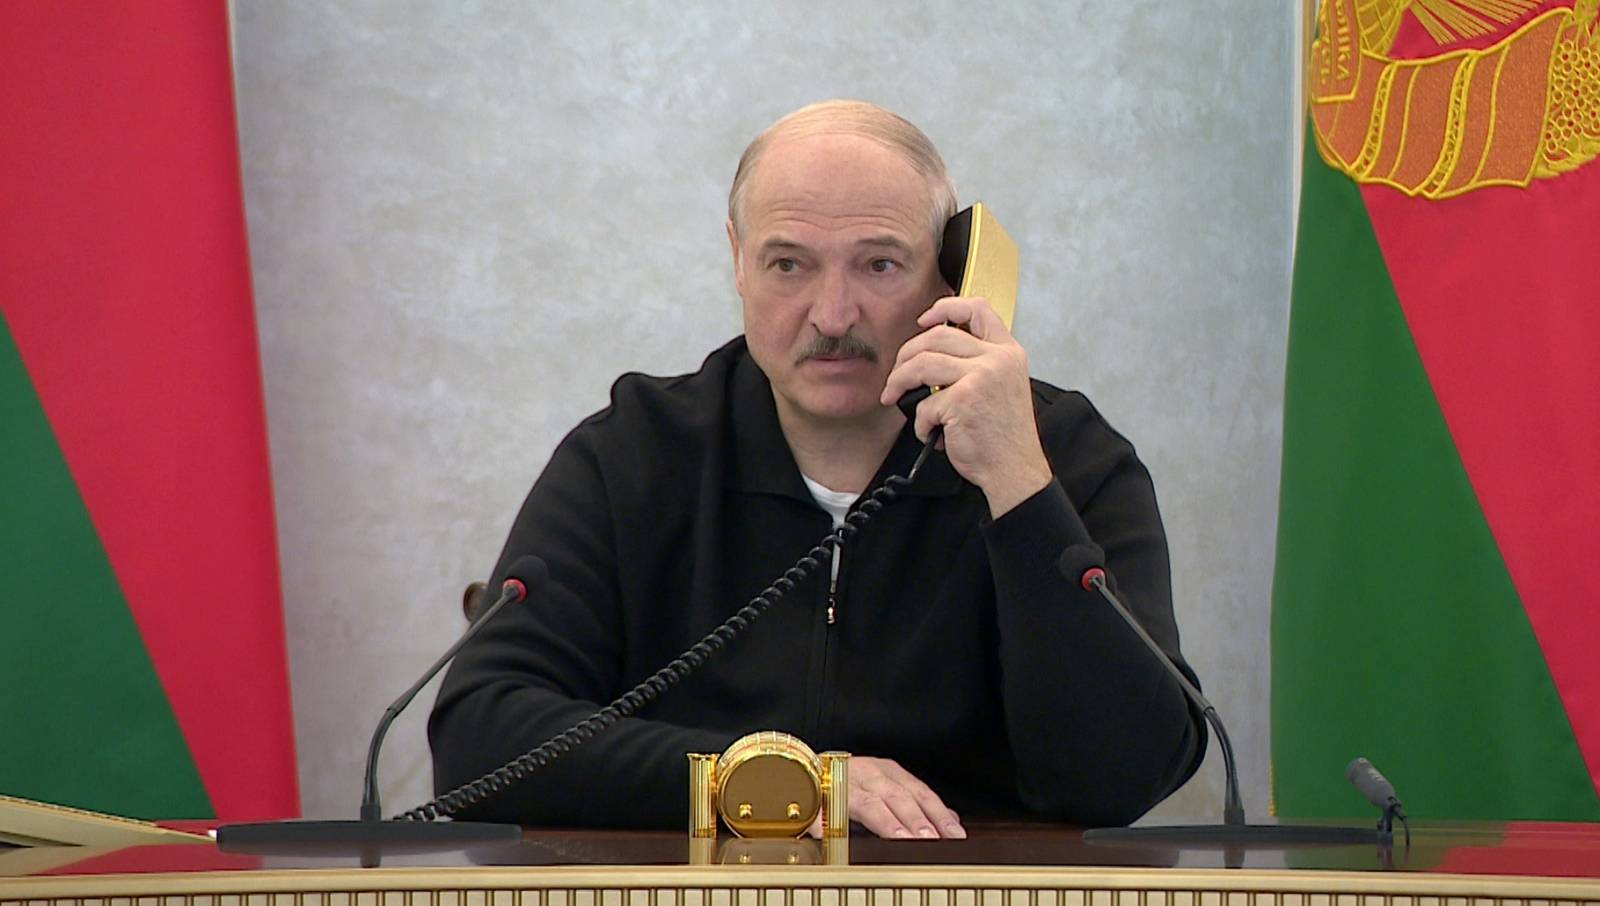 Belarusian President Alexander Lukashenko works at the Independence Palace in Minsk